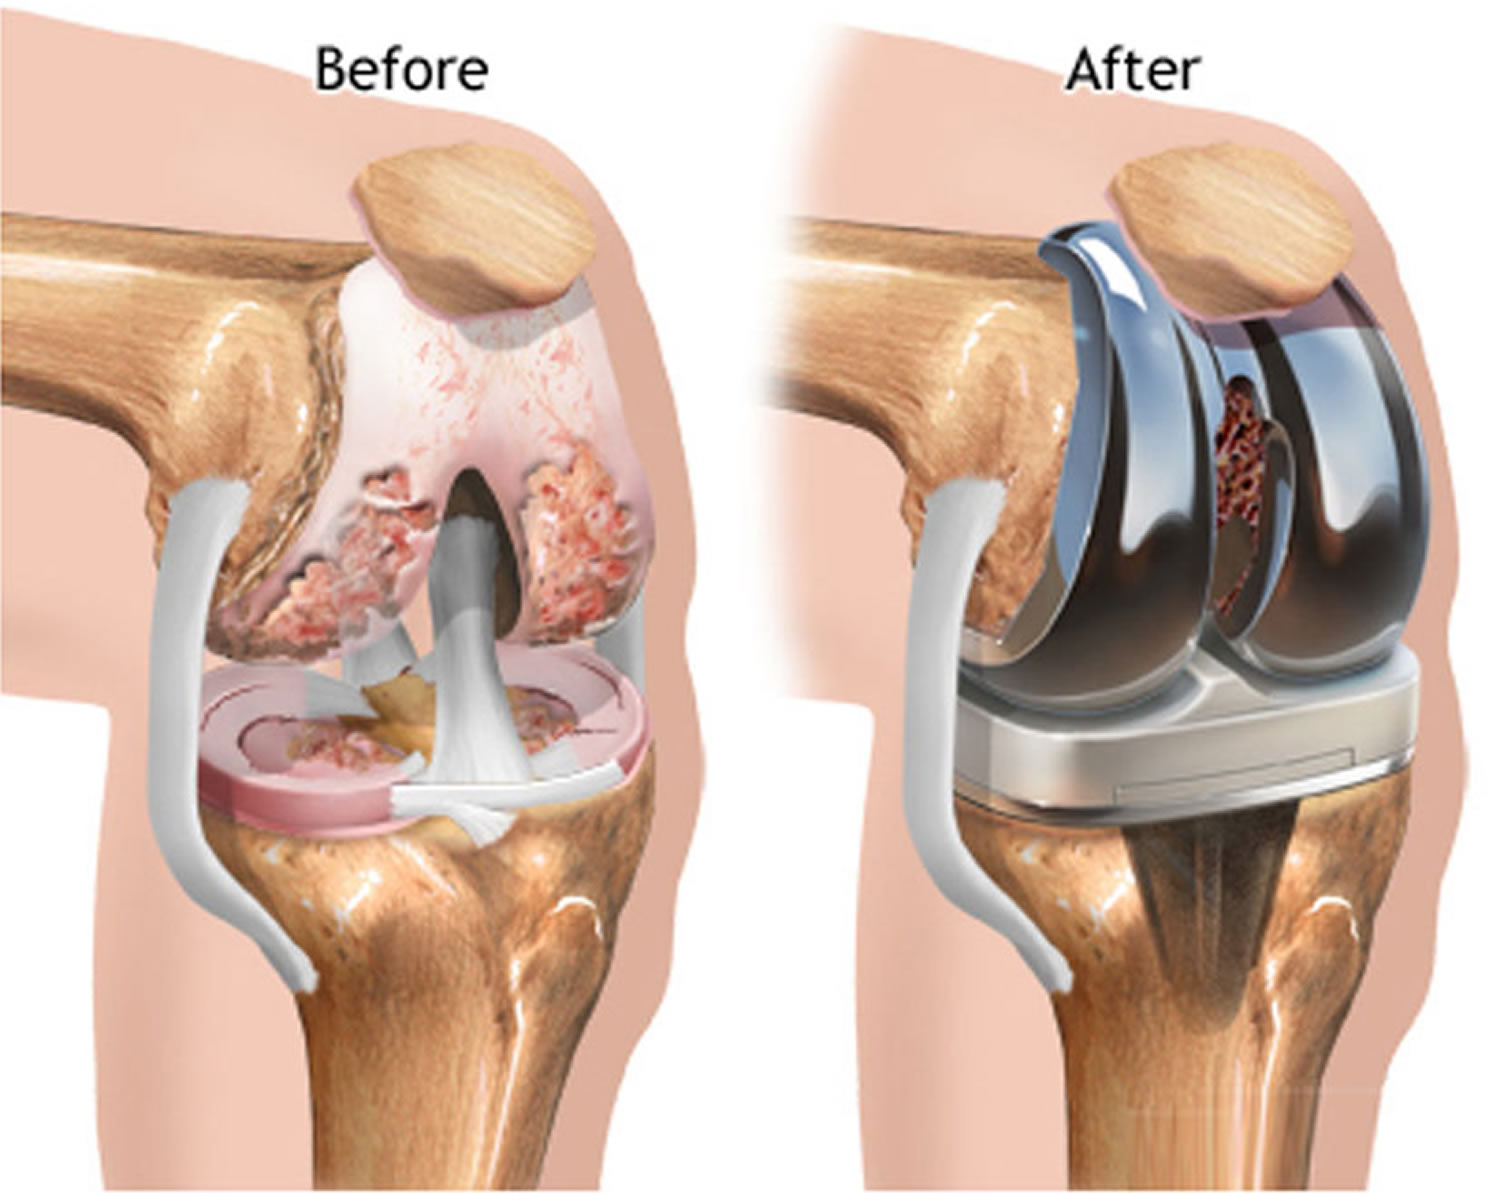 knee replacement surgery recovery time complications rh healthjade com knee joint replacement diagram knee replacement surgery diagram